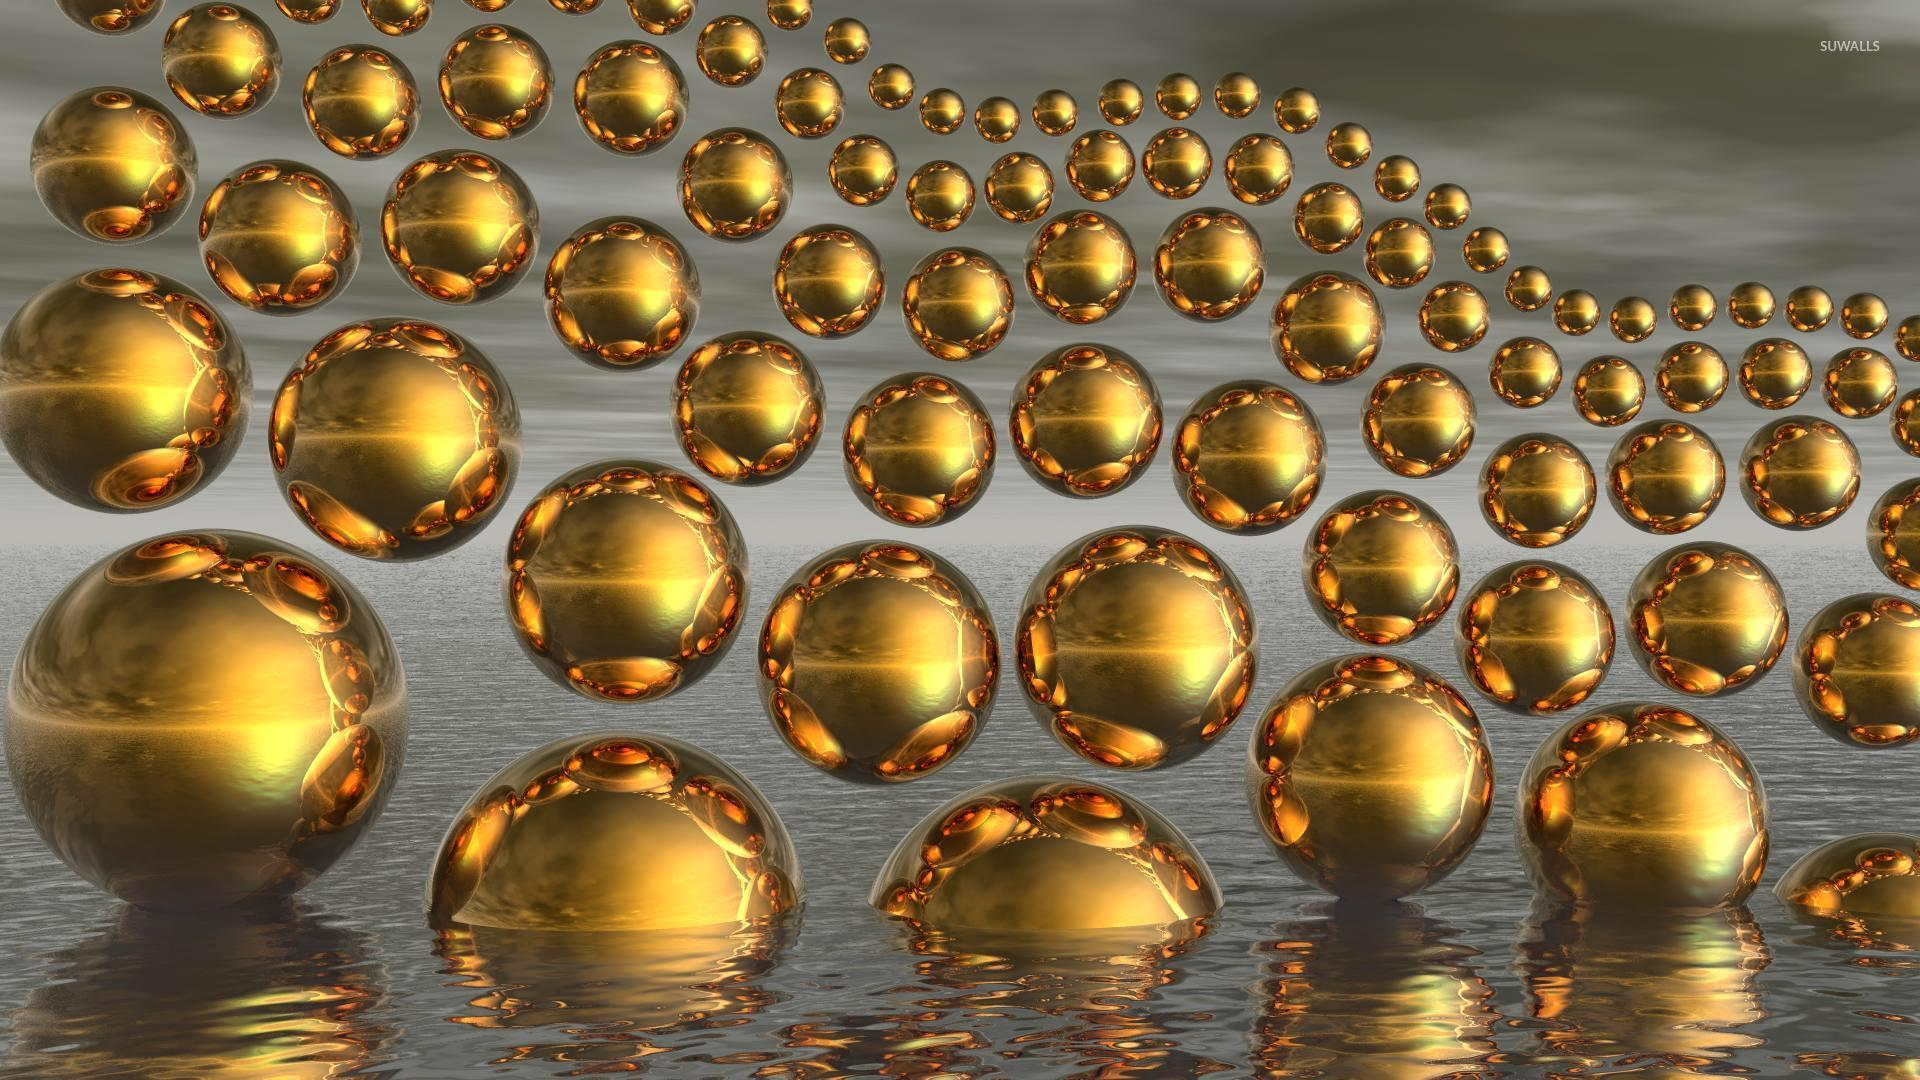 gold spheres wallpaper 3d wallpapers 10564